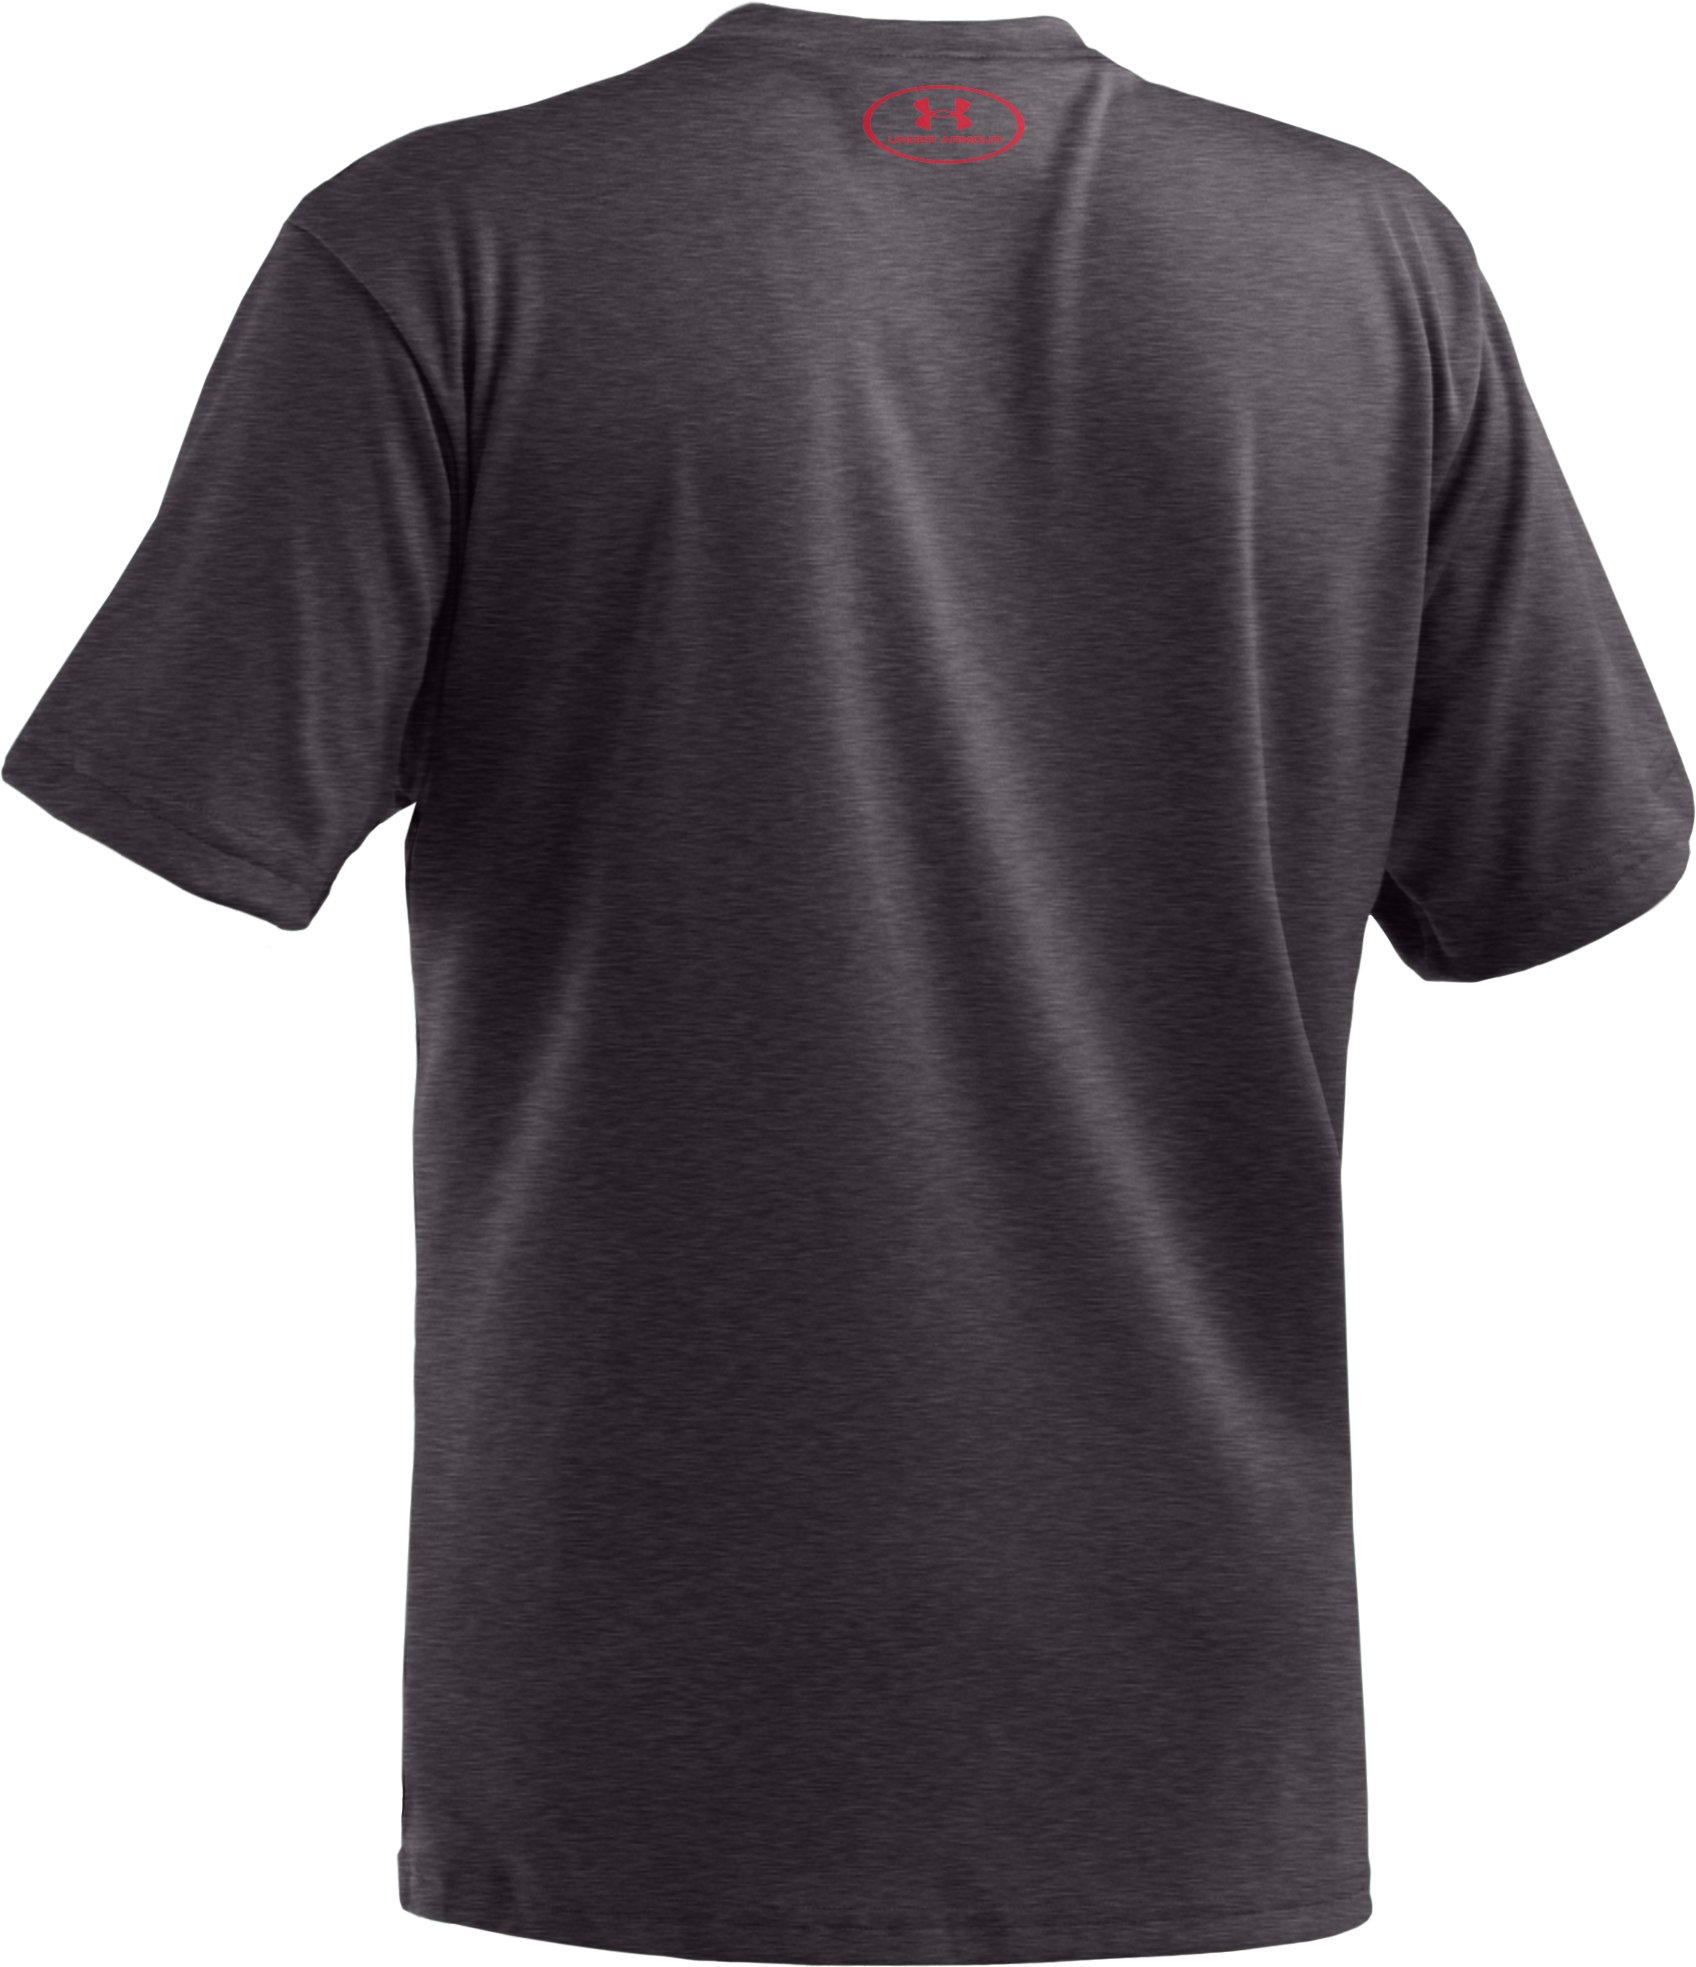 Boys' UA Armour Up™ T-Shirt, Carbon Heather, undefined